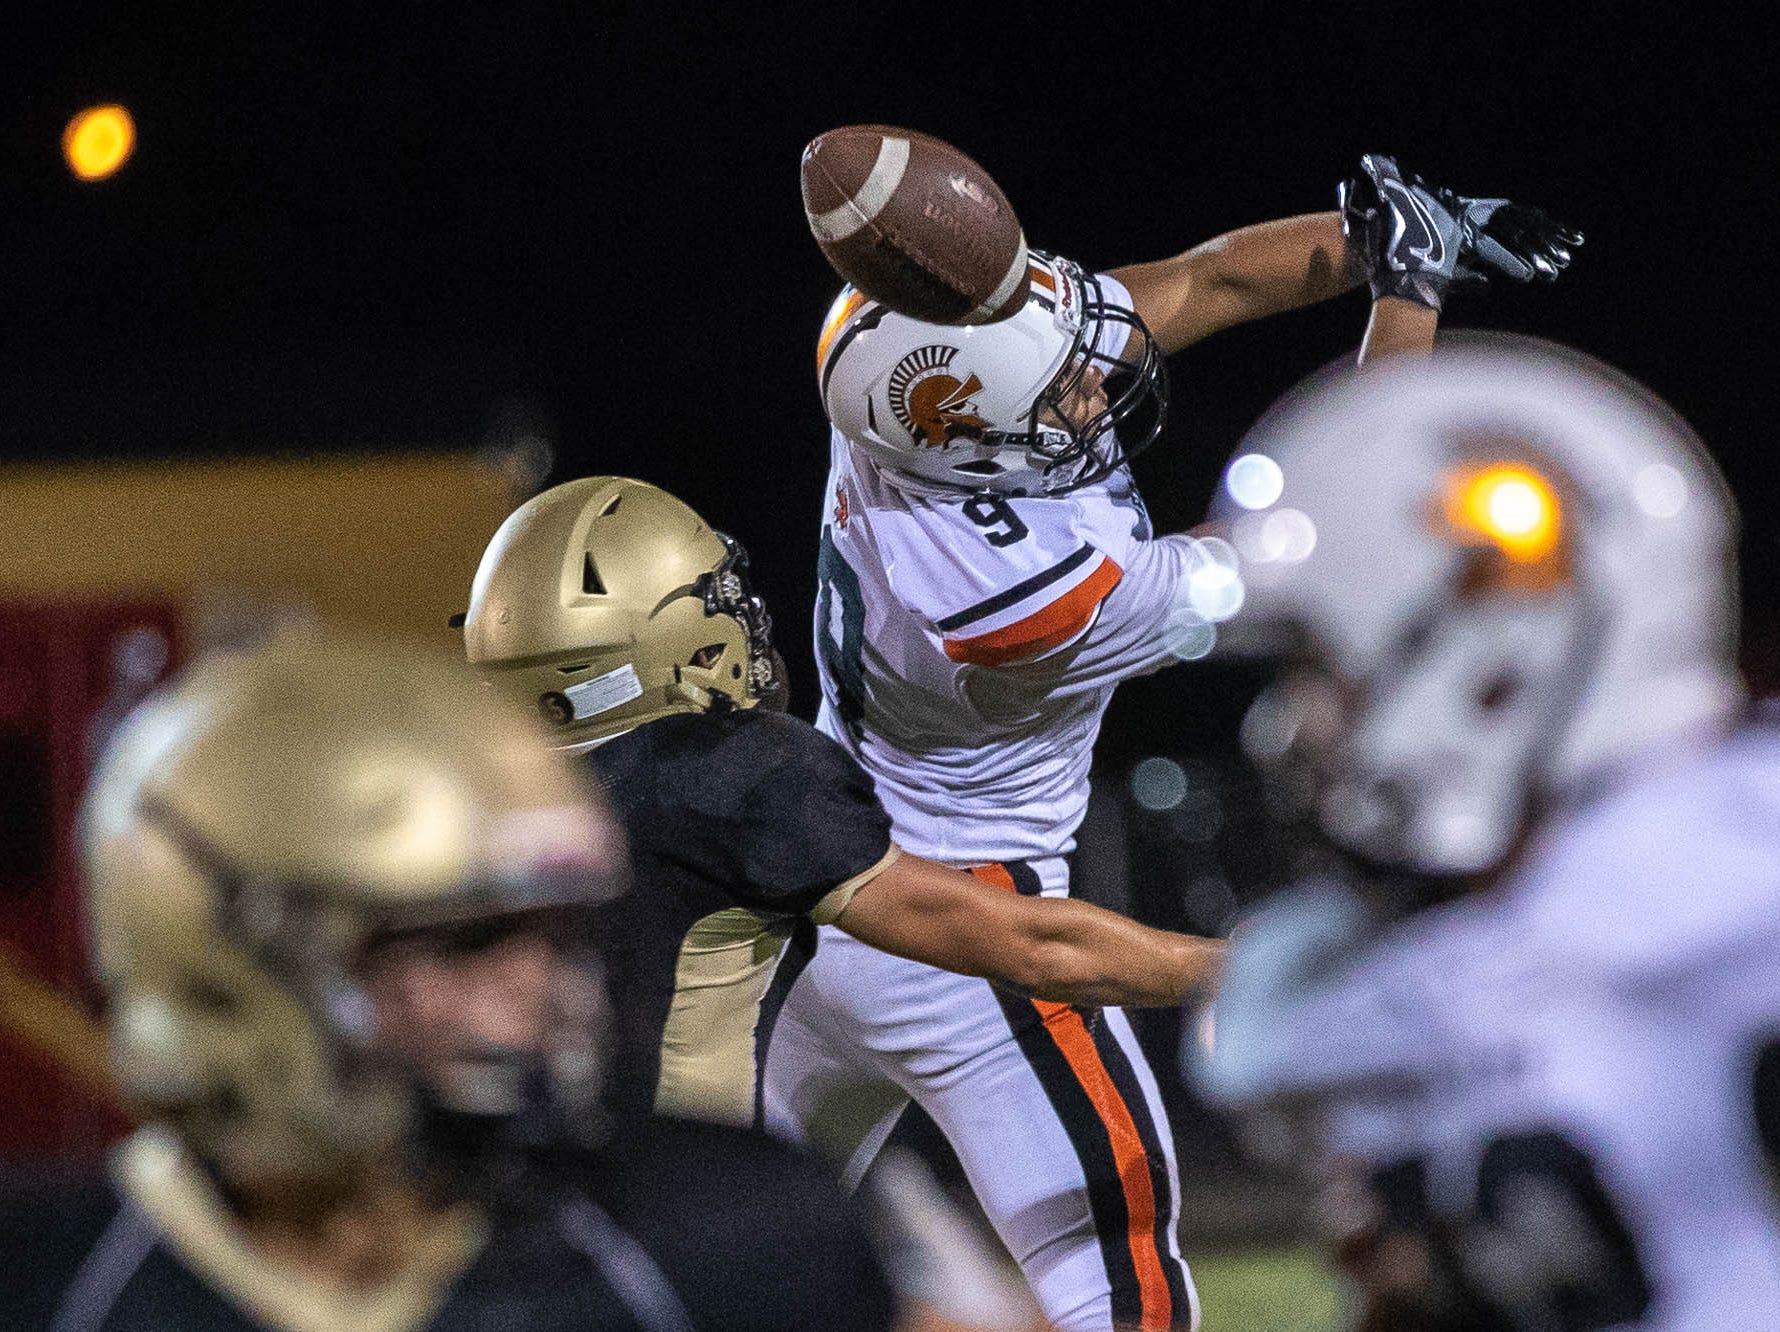 York Suburban's Tyren Posey (9) is incomplete on a pass during the second half of a football game between Delone Catholic and York Suburban, Friday, Aug. 31, 2018, at Delone Catholic High School in McSherrystown. Delone beat York Suburban 62-0.